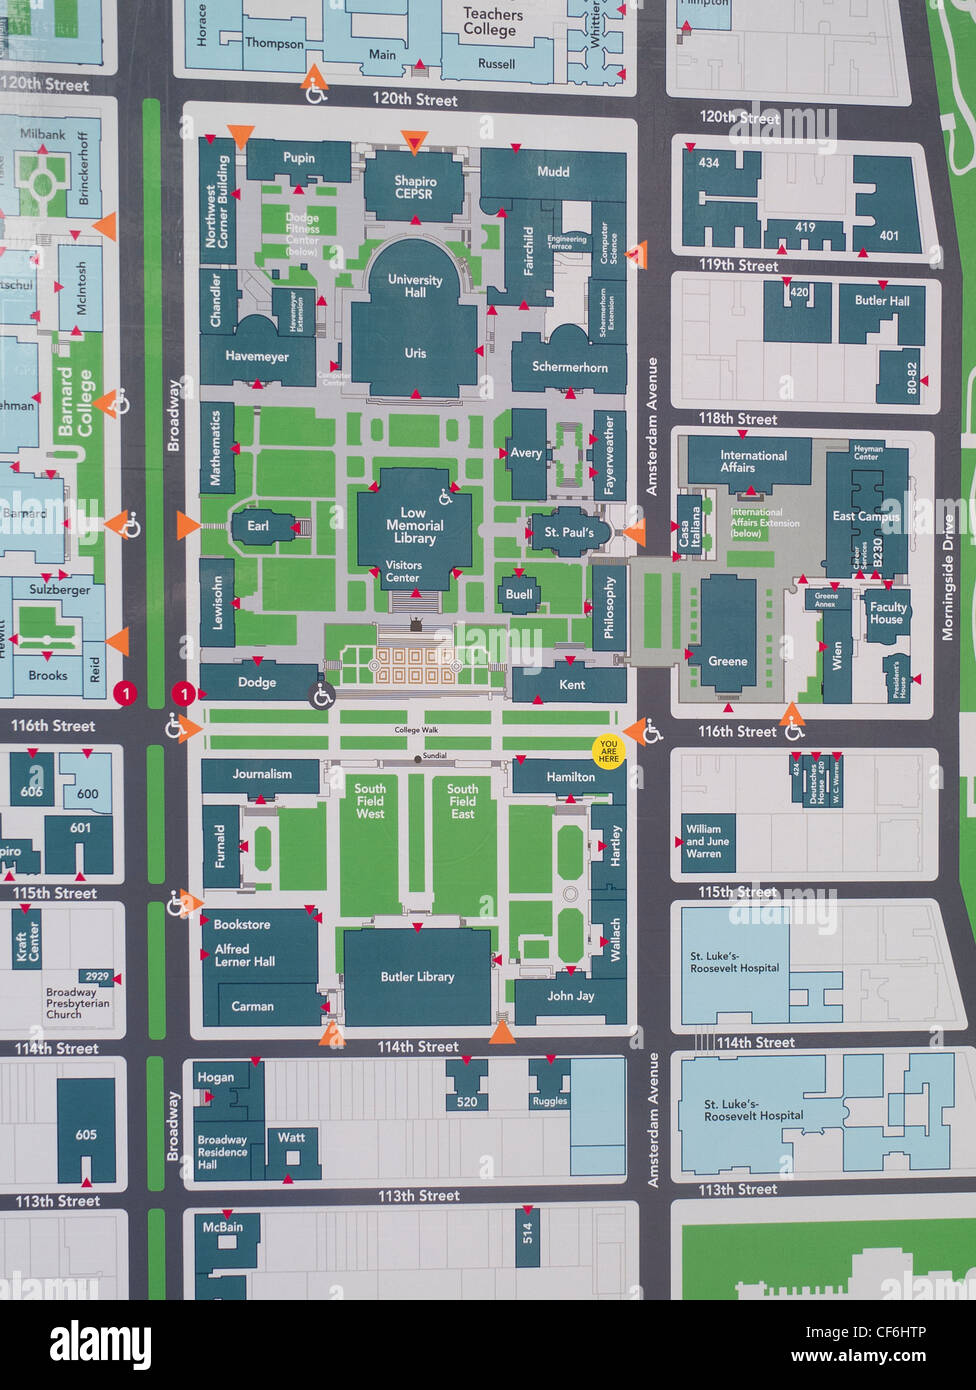 Mississippi Valley State University Campus Map